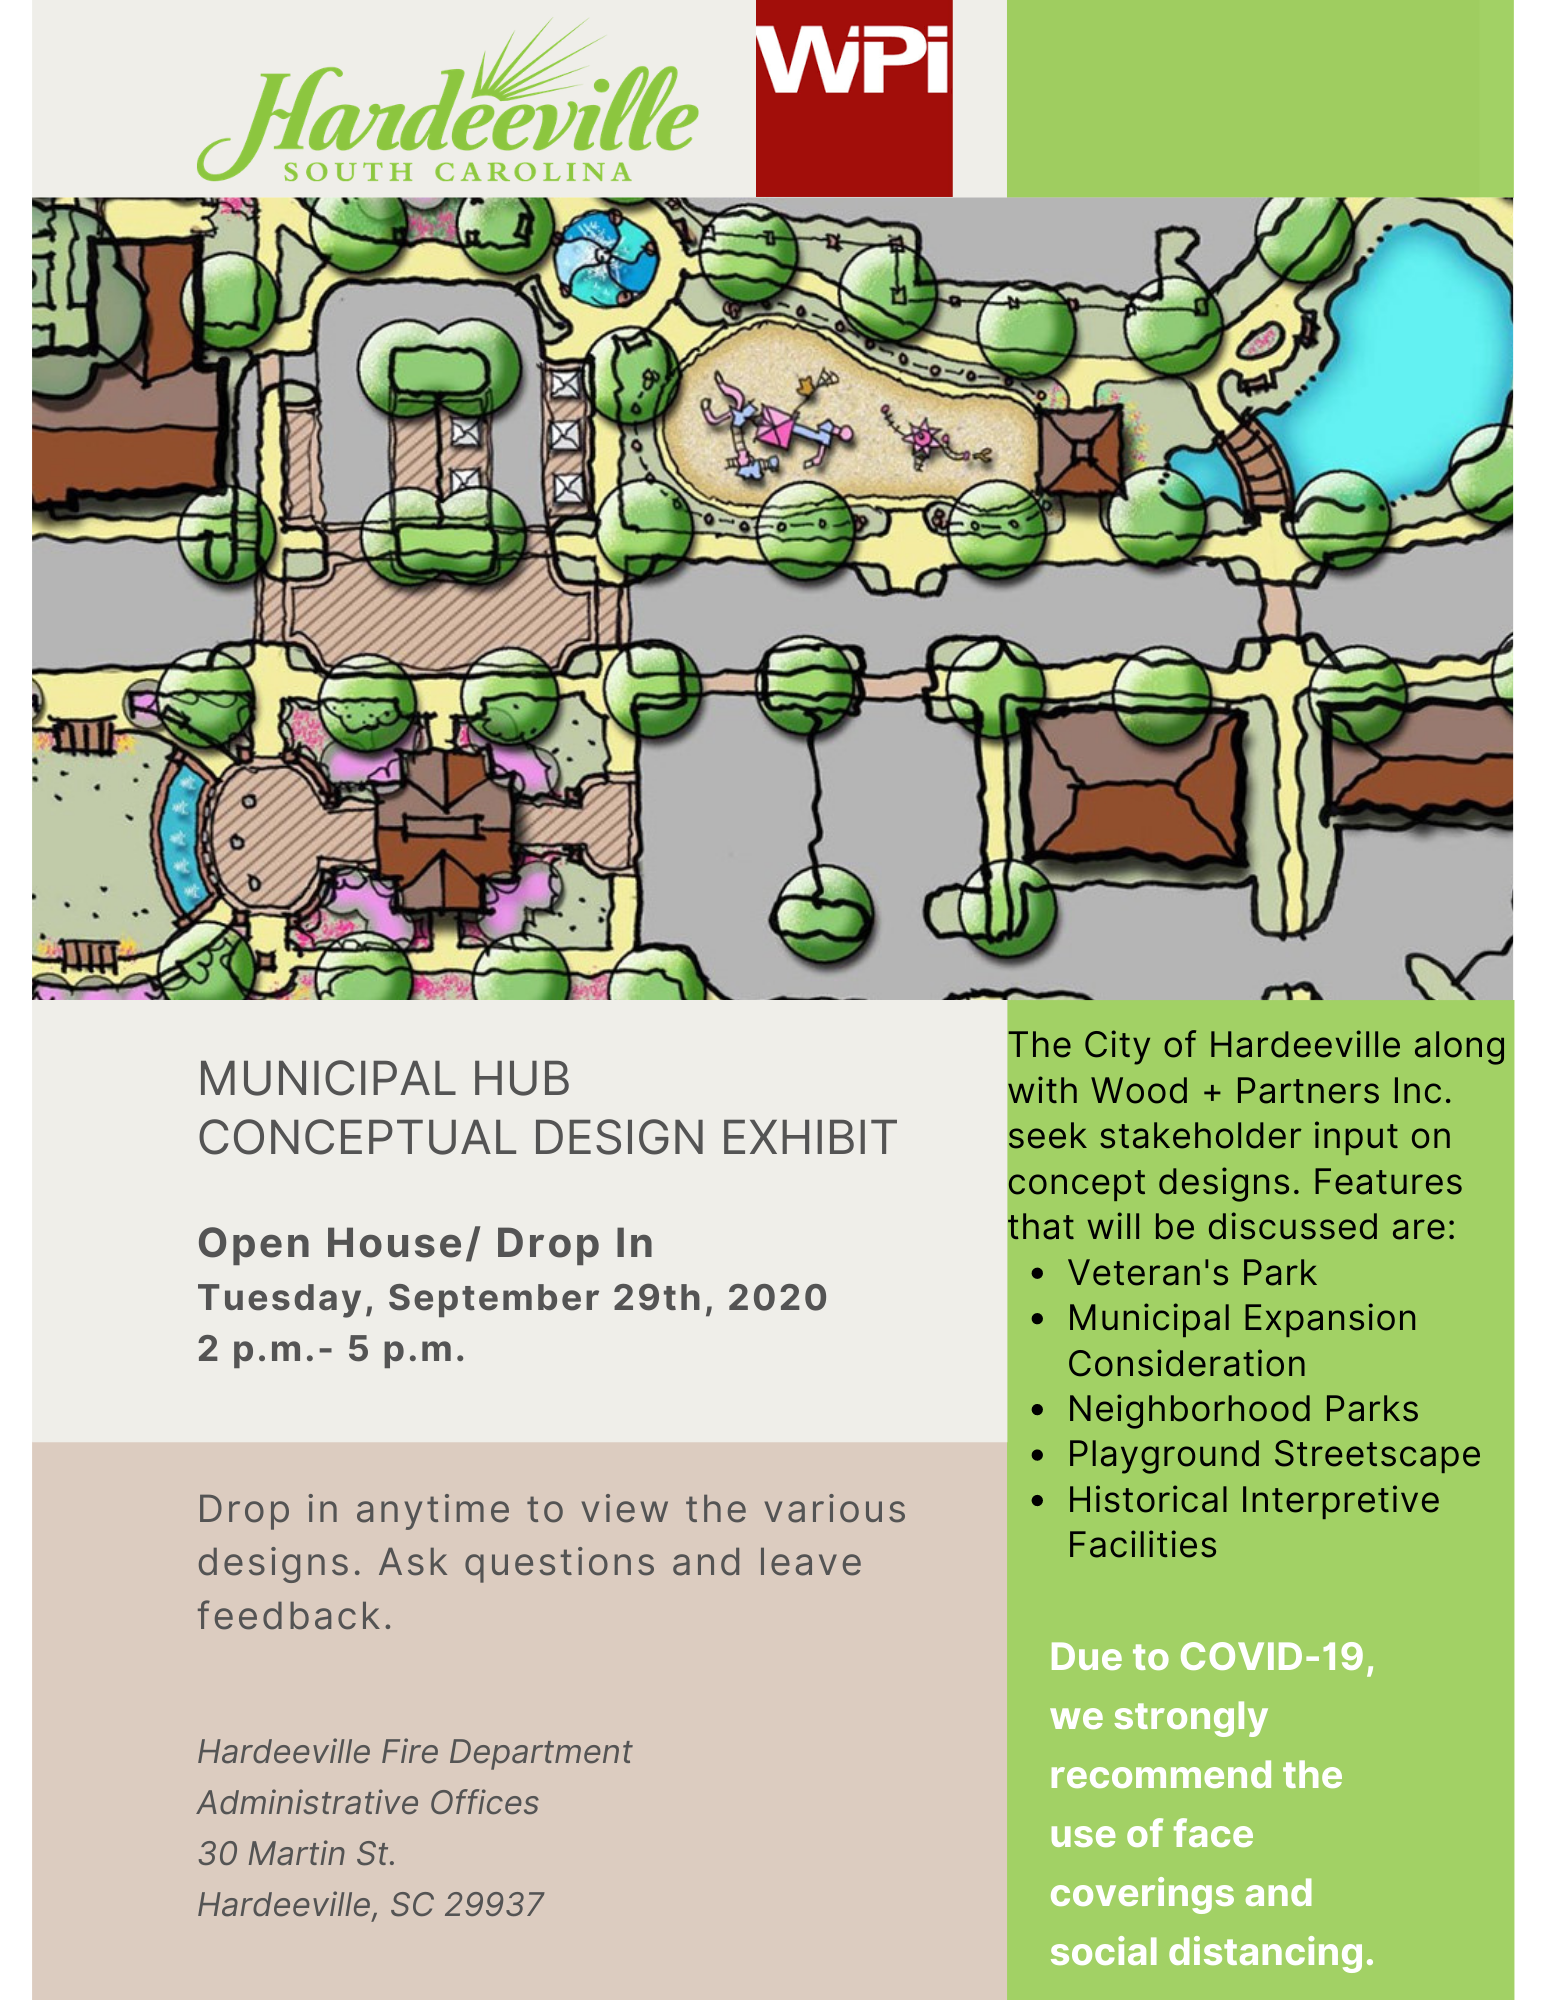 Municipal Hub Conceptual Design Exhibit Flyer. Open House/ Drop in. Tuesday, September 25.